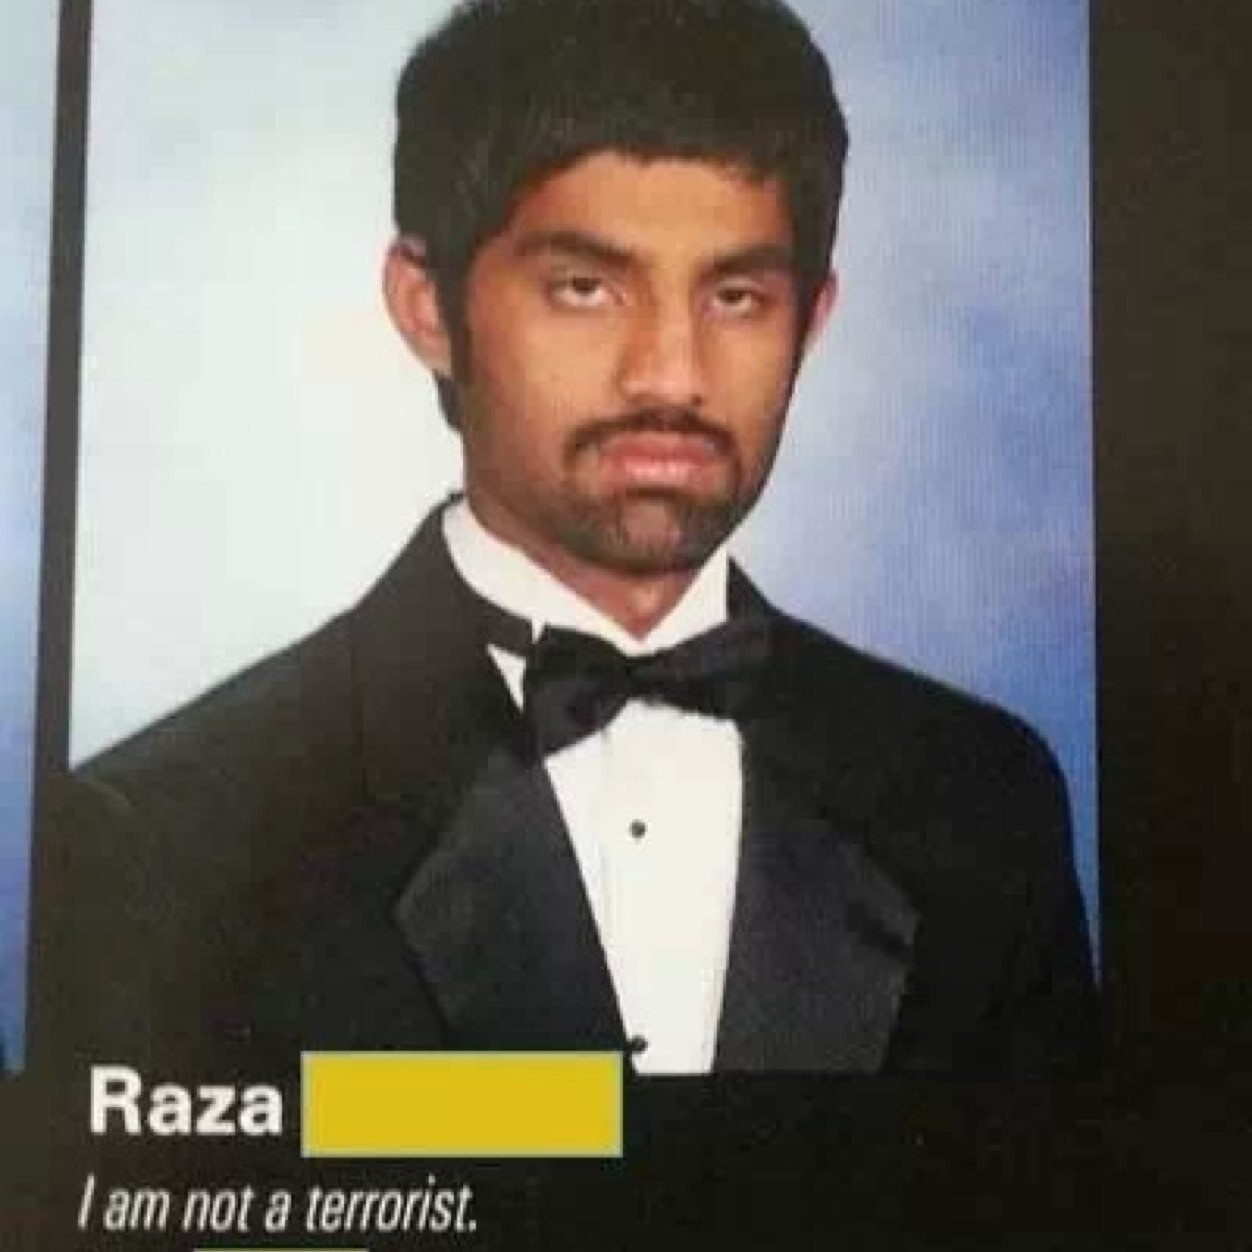 Funny Yearbook Quote Hahayearbook Twitter